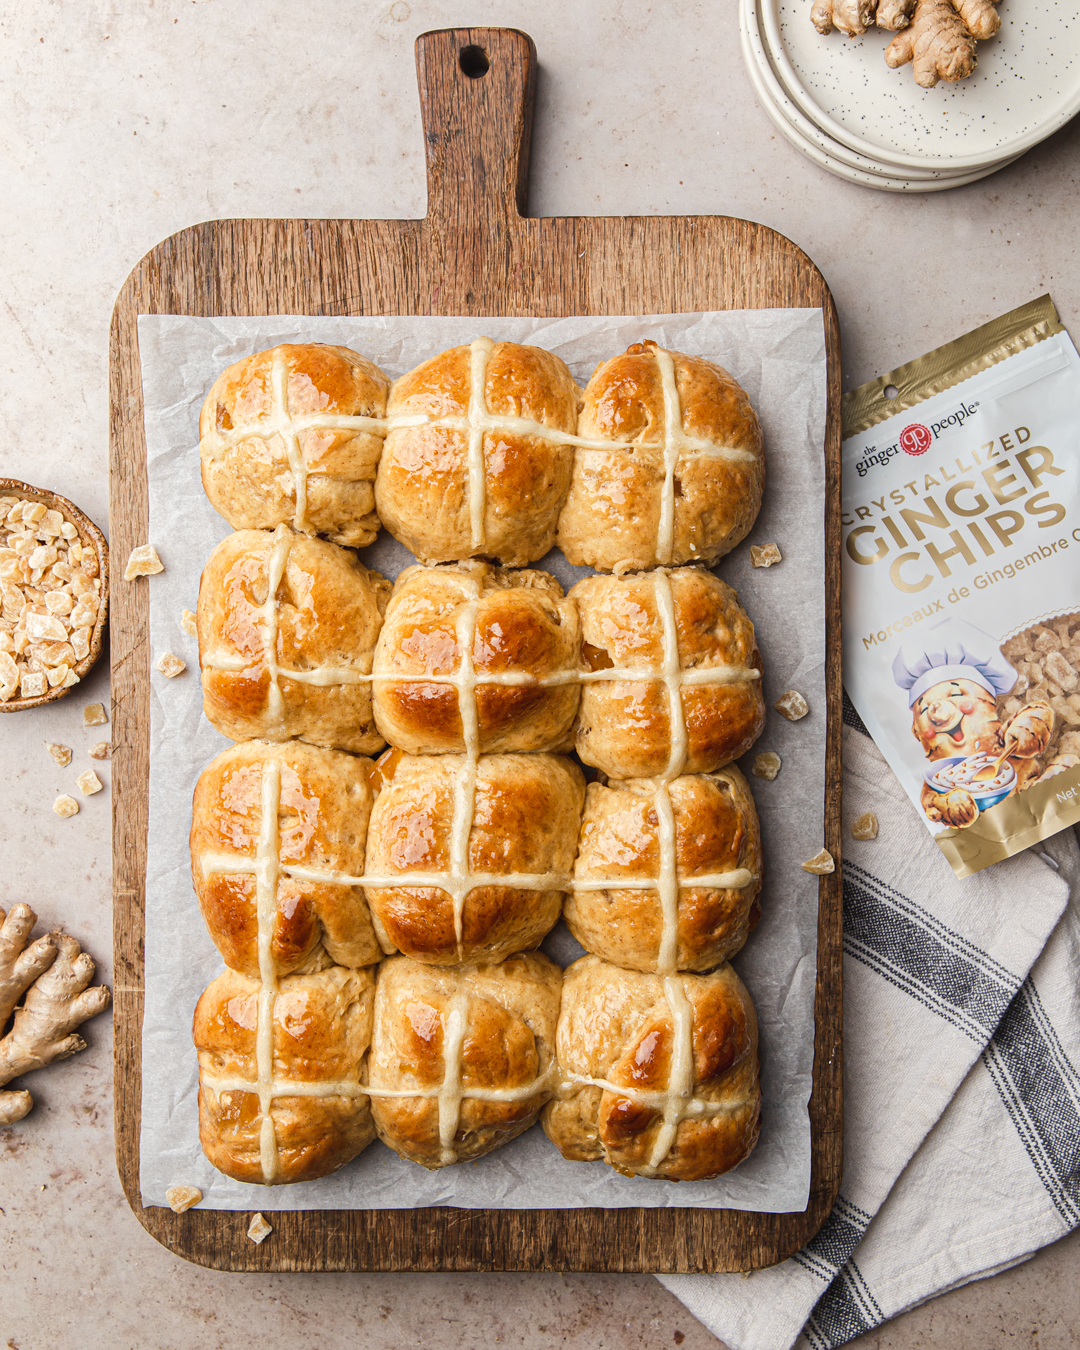 Hot Cross Buns with ginger